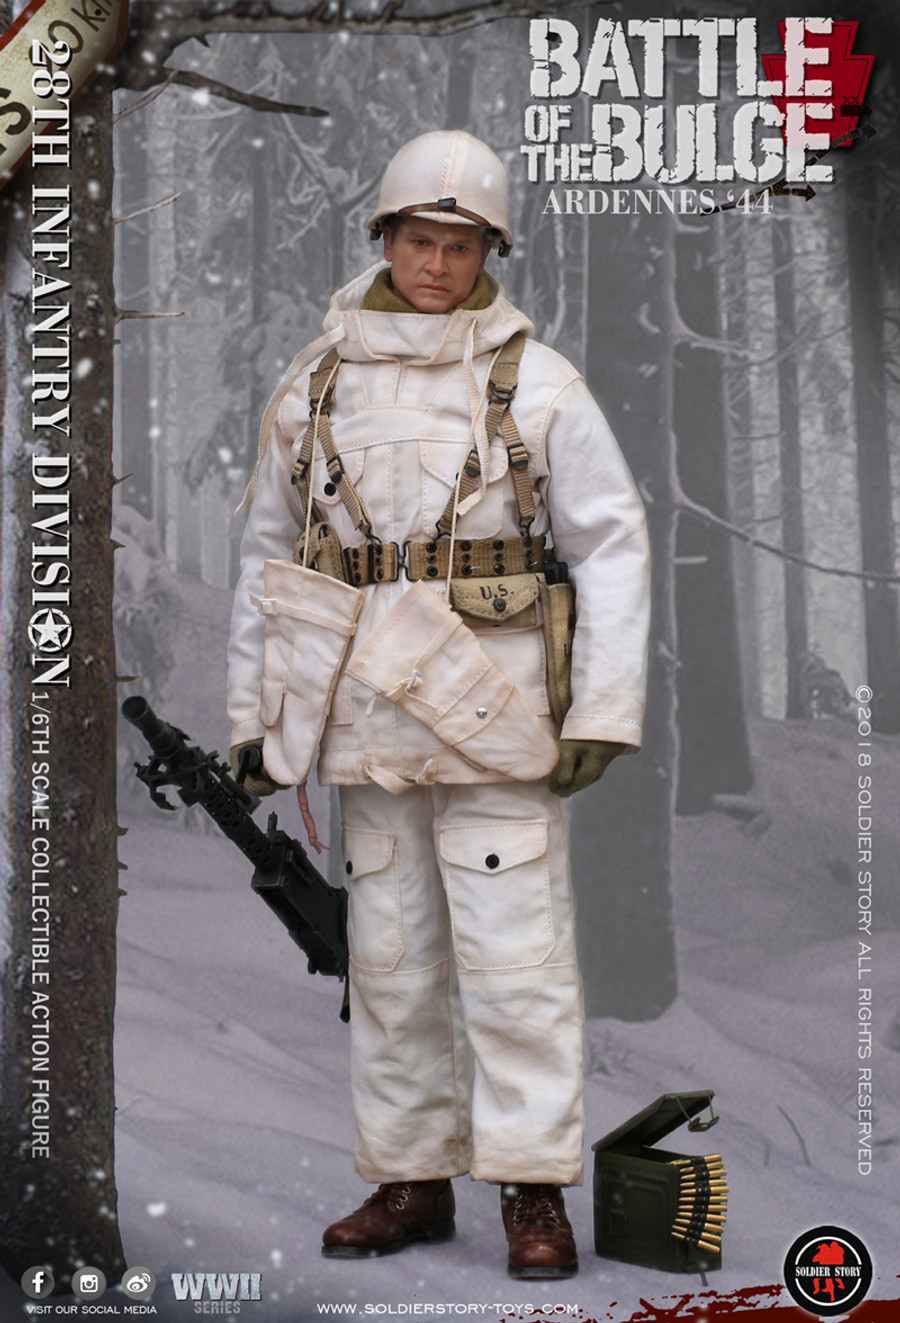 Soldier Story - U.S. Army 28th Infantry Division Ardennes 1944